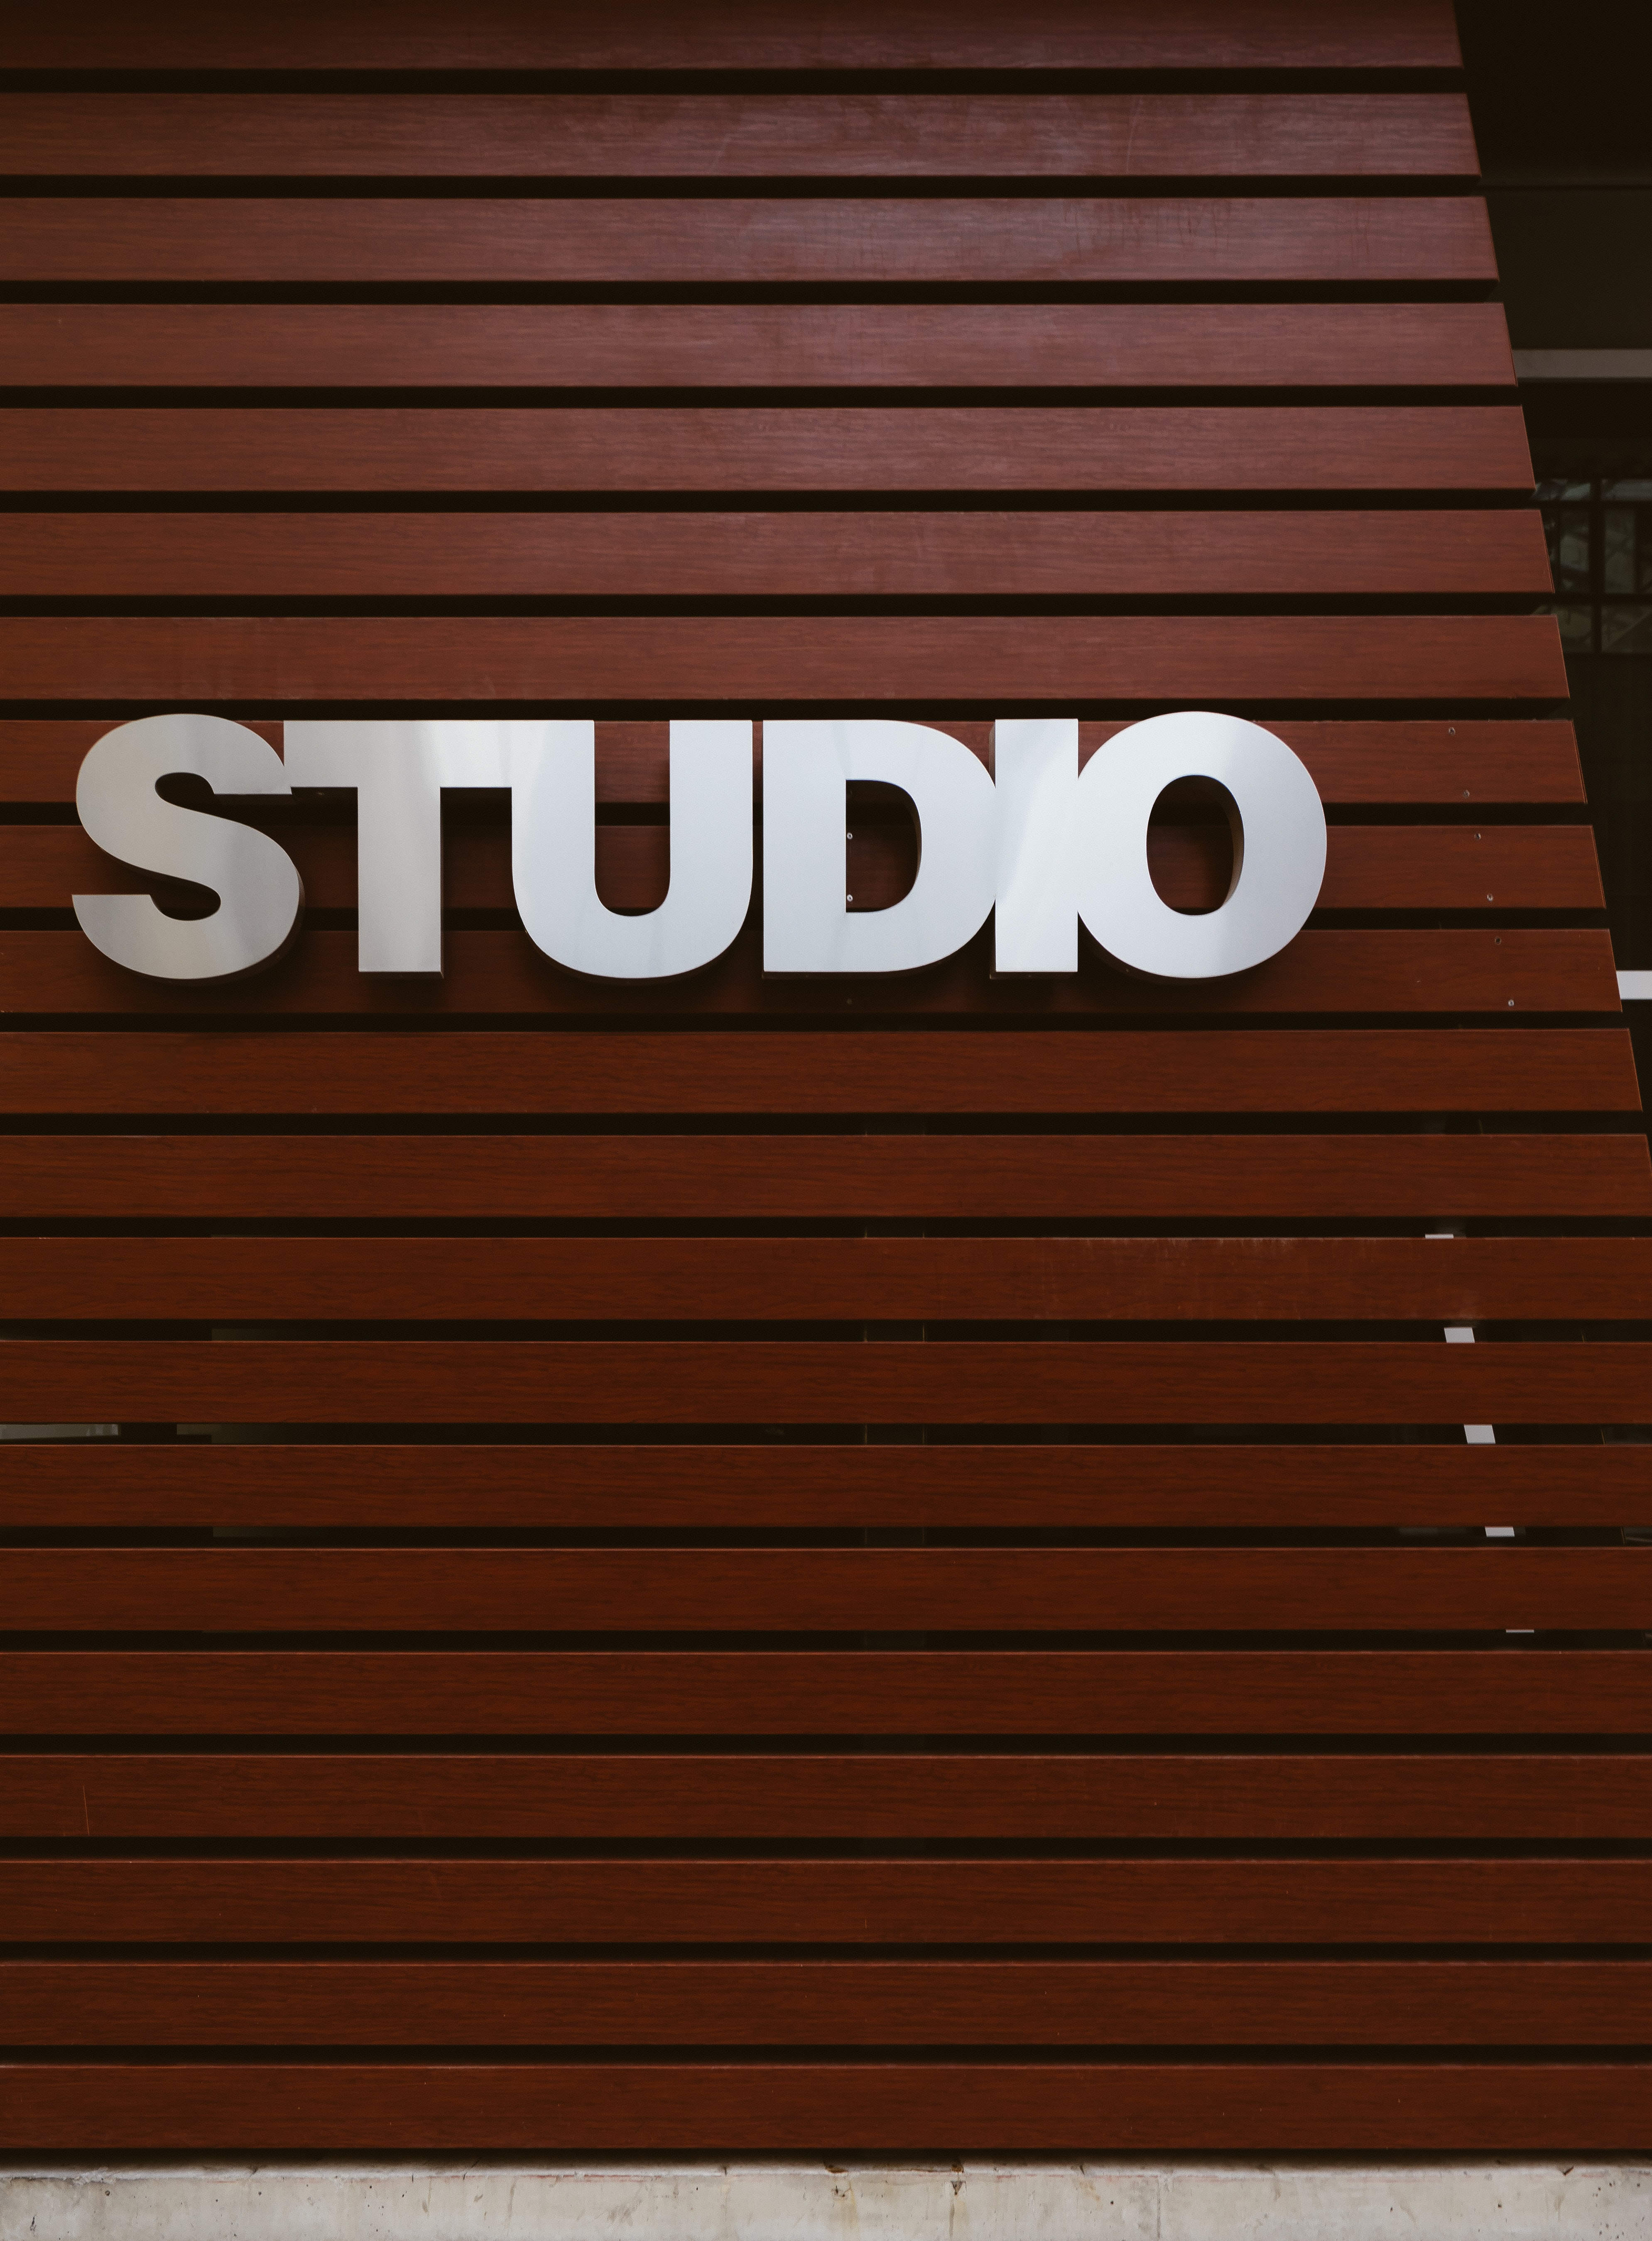 Studio, written on a sign on a wall.